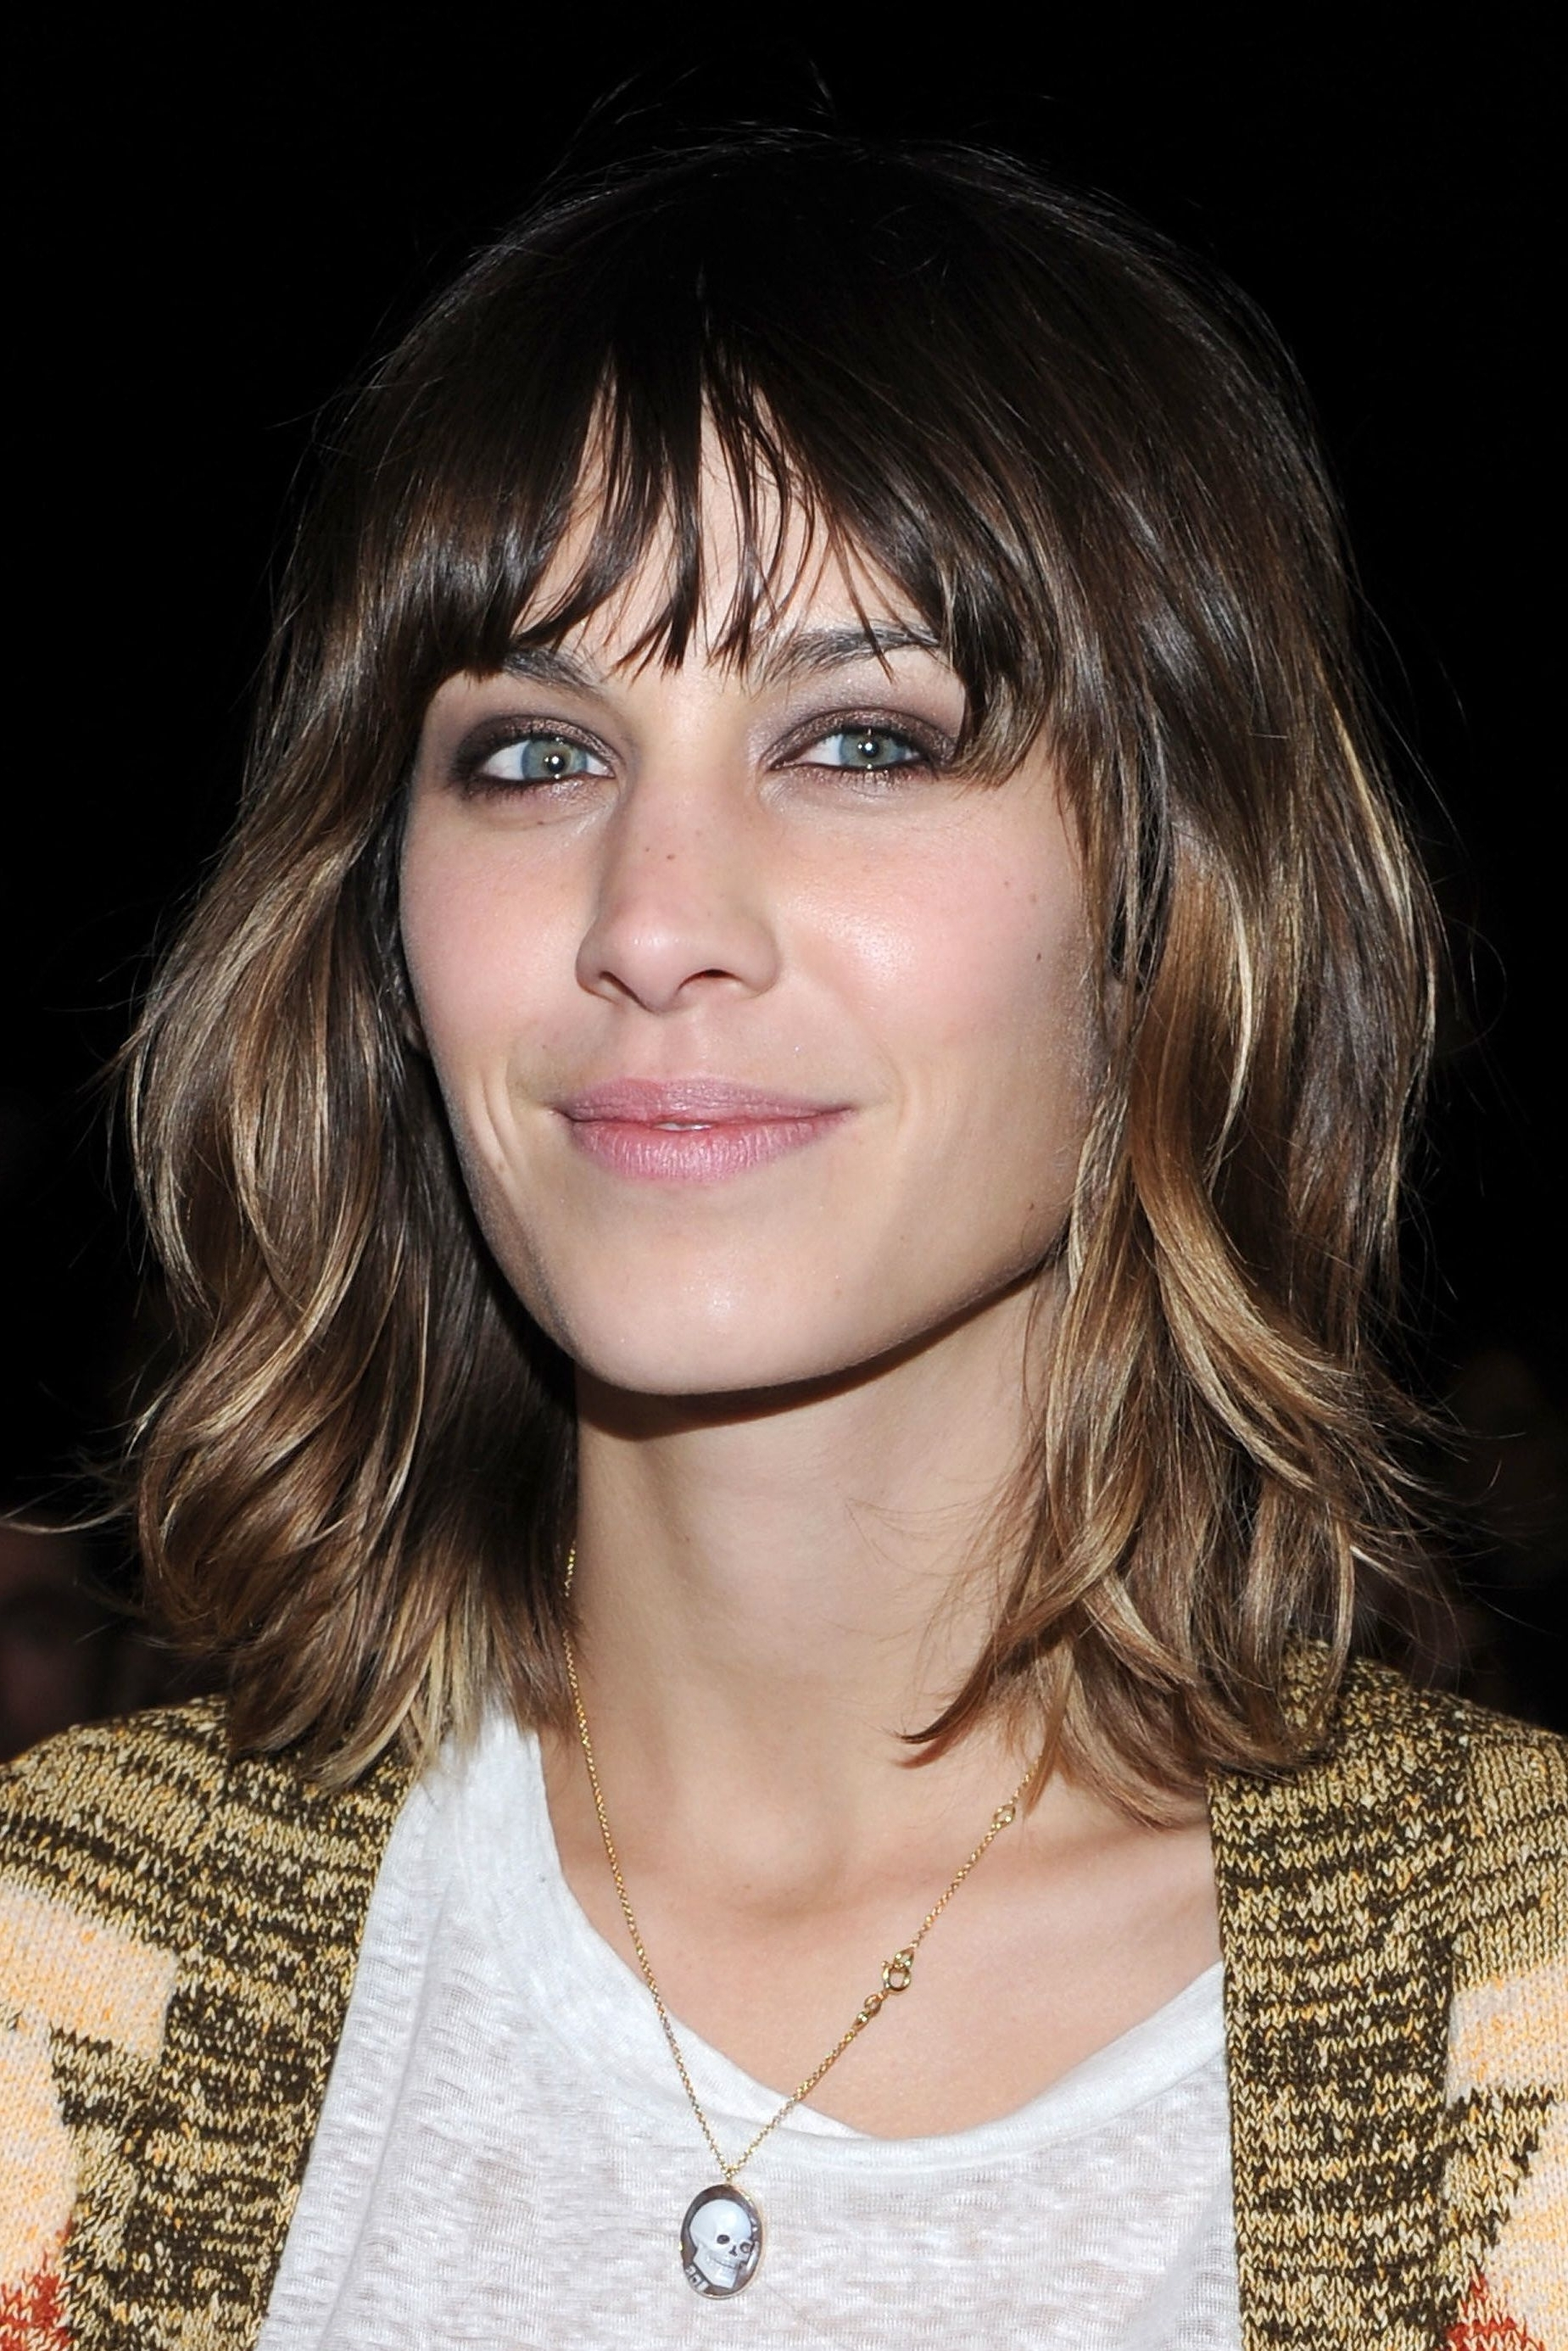 Well Known Medium Shaggy Hairstyles With Bangs In From Short To Long: 24 Fabulous Shag Haircuts (View 15 of 15)